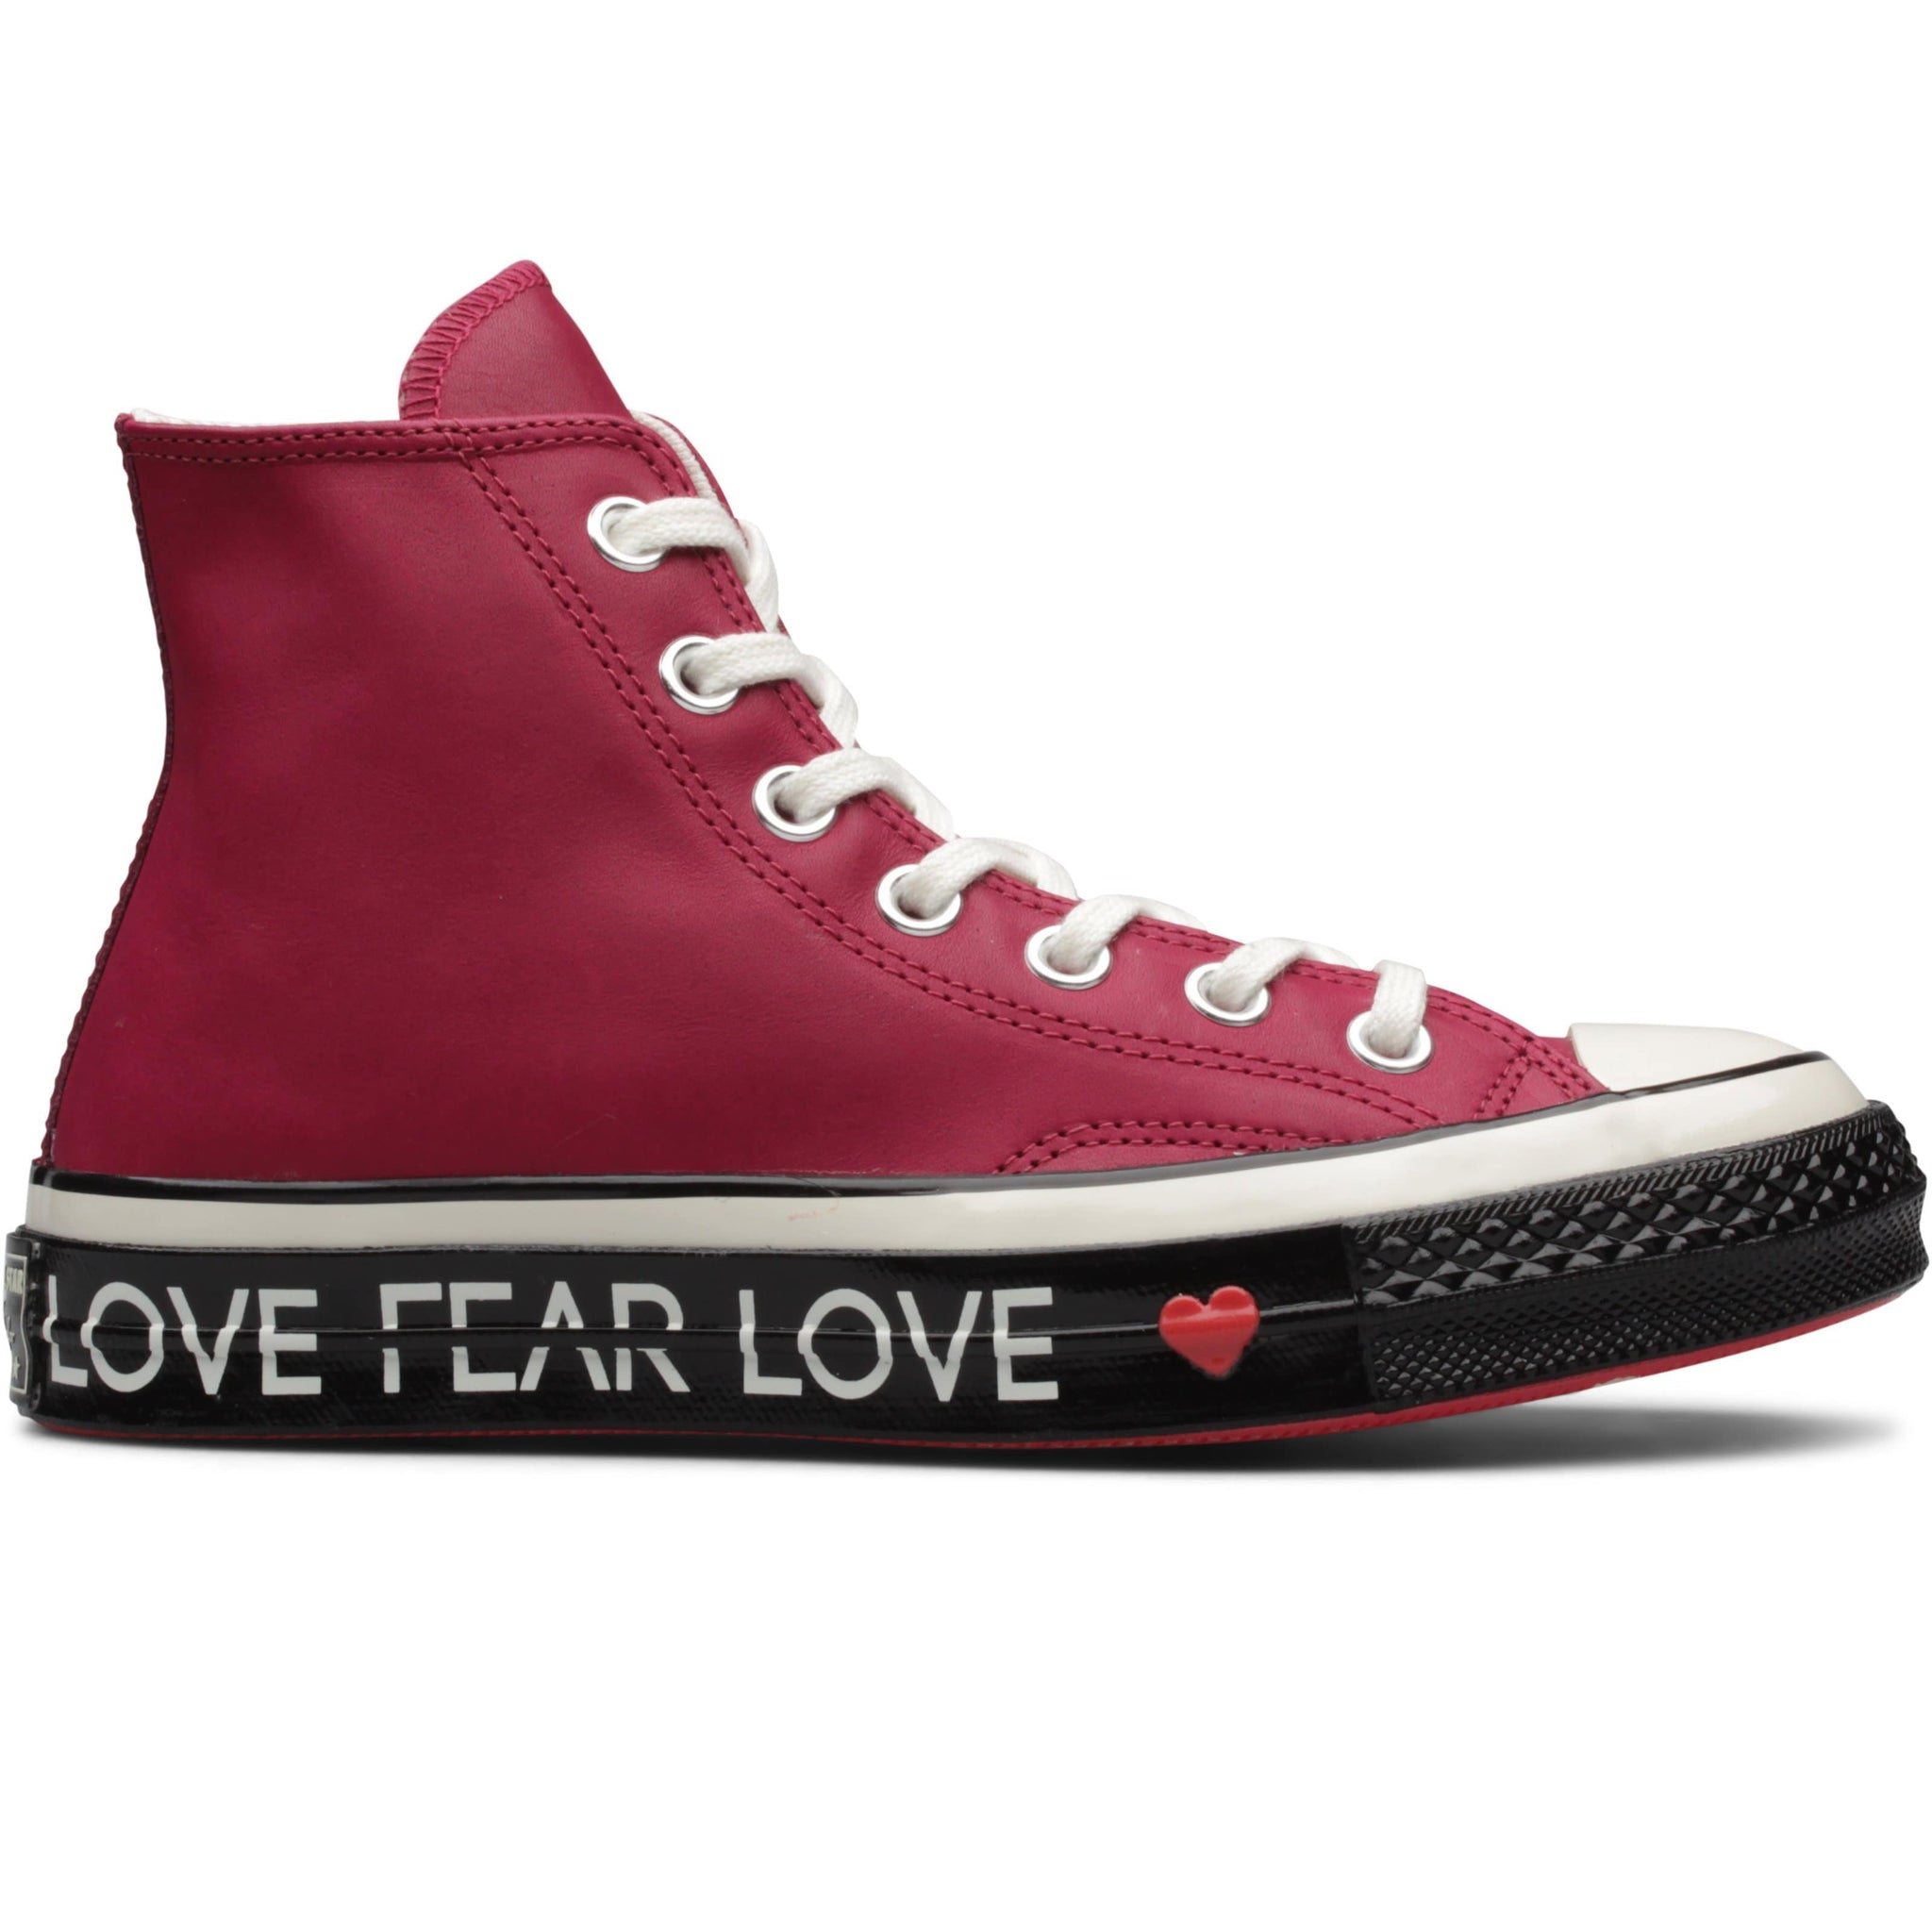 WOMEN S CHUCK 70 HI LOVE GRAPHIC Rhubarb Egret Black – Bodega 009242944593